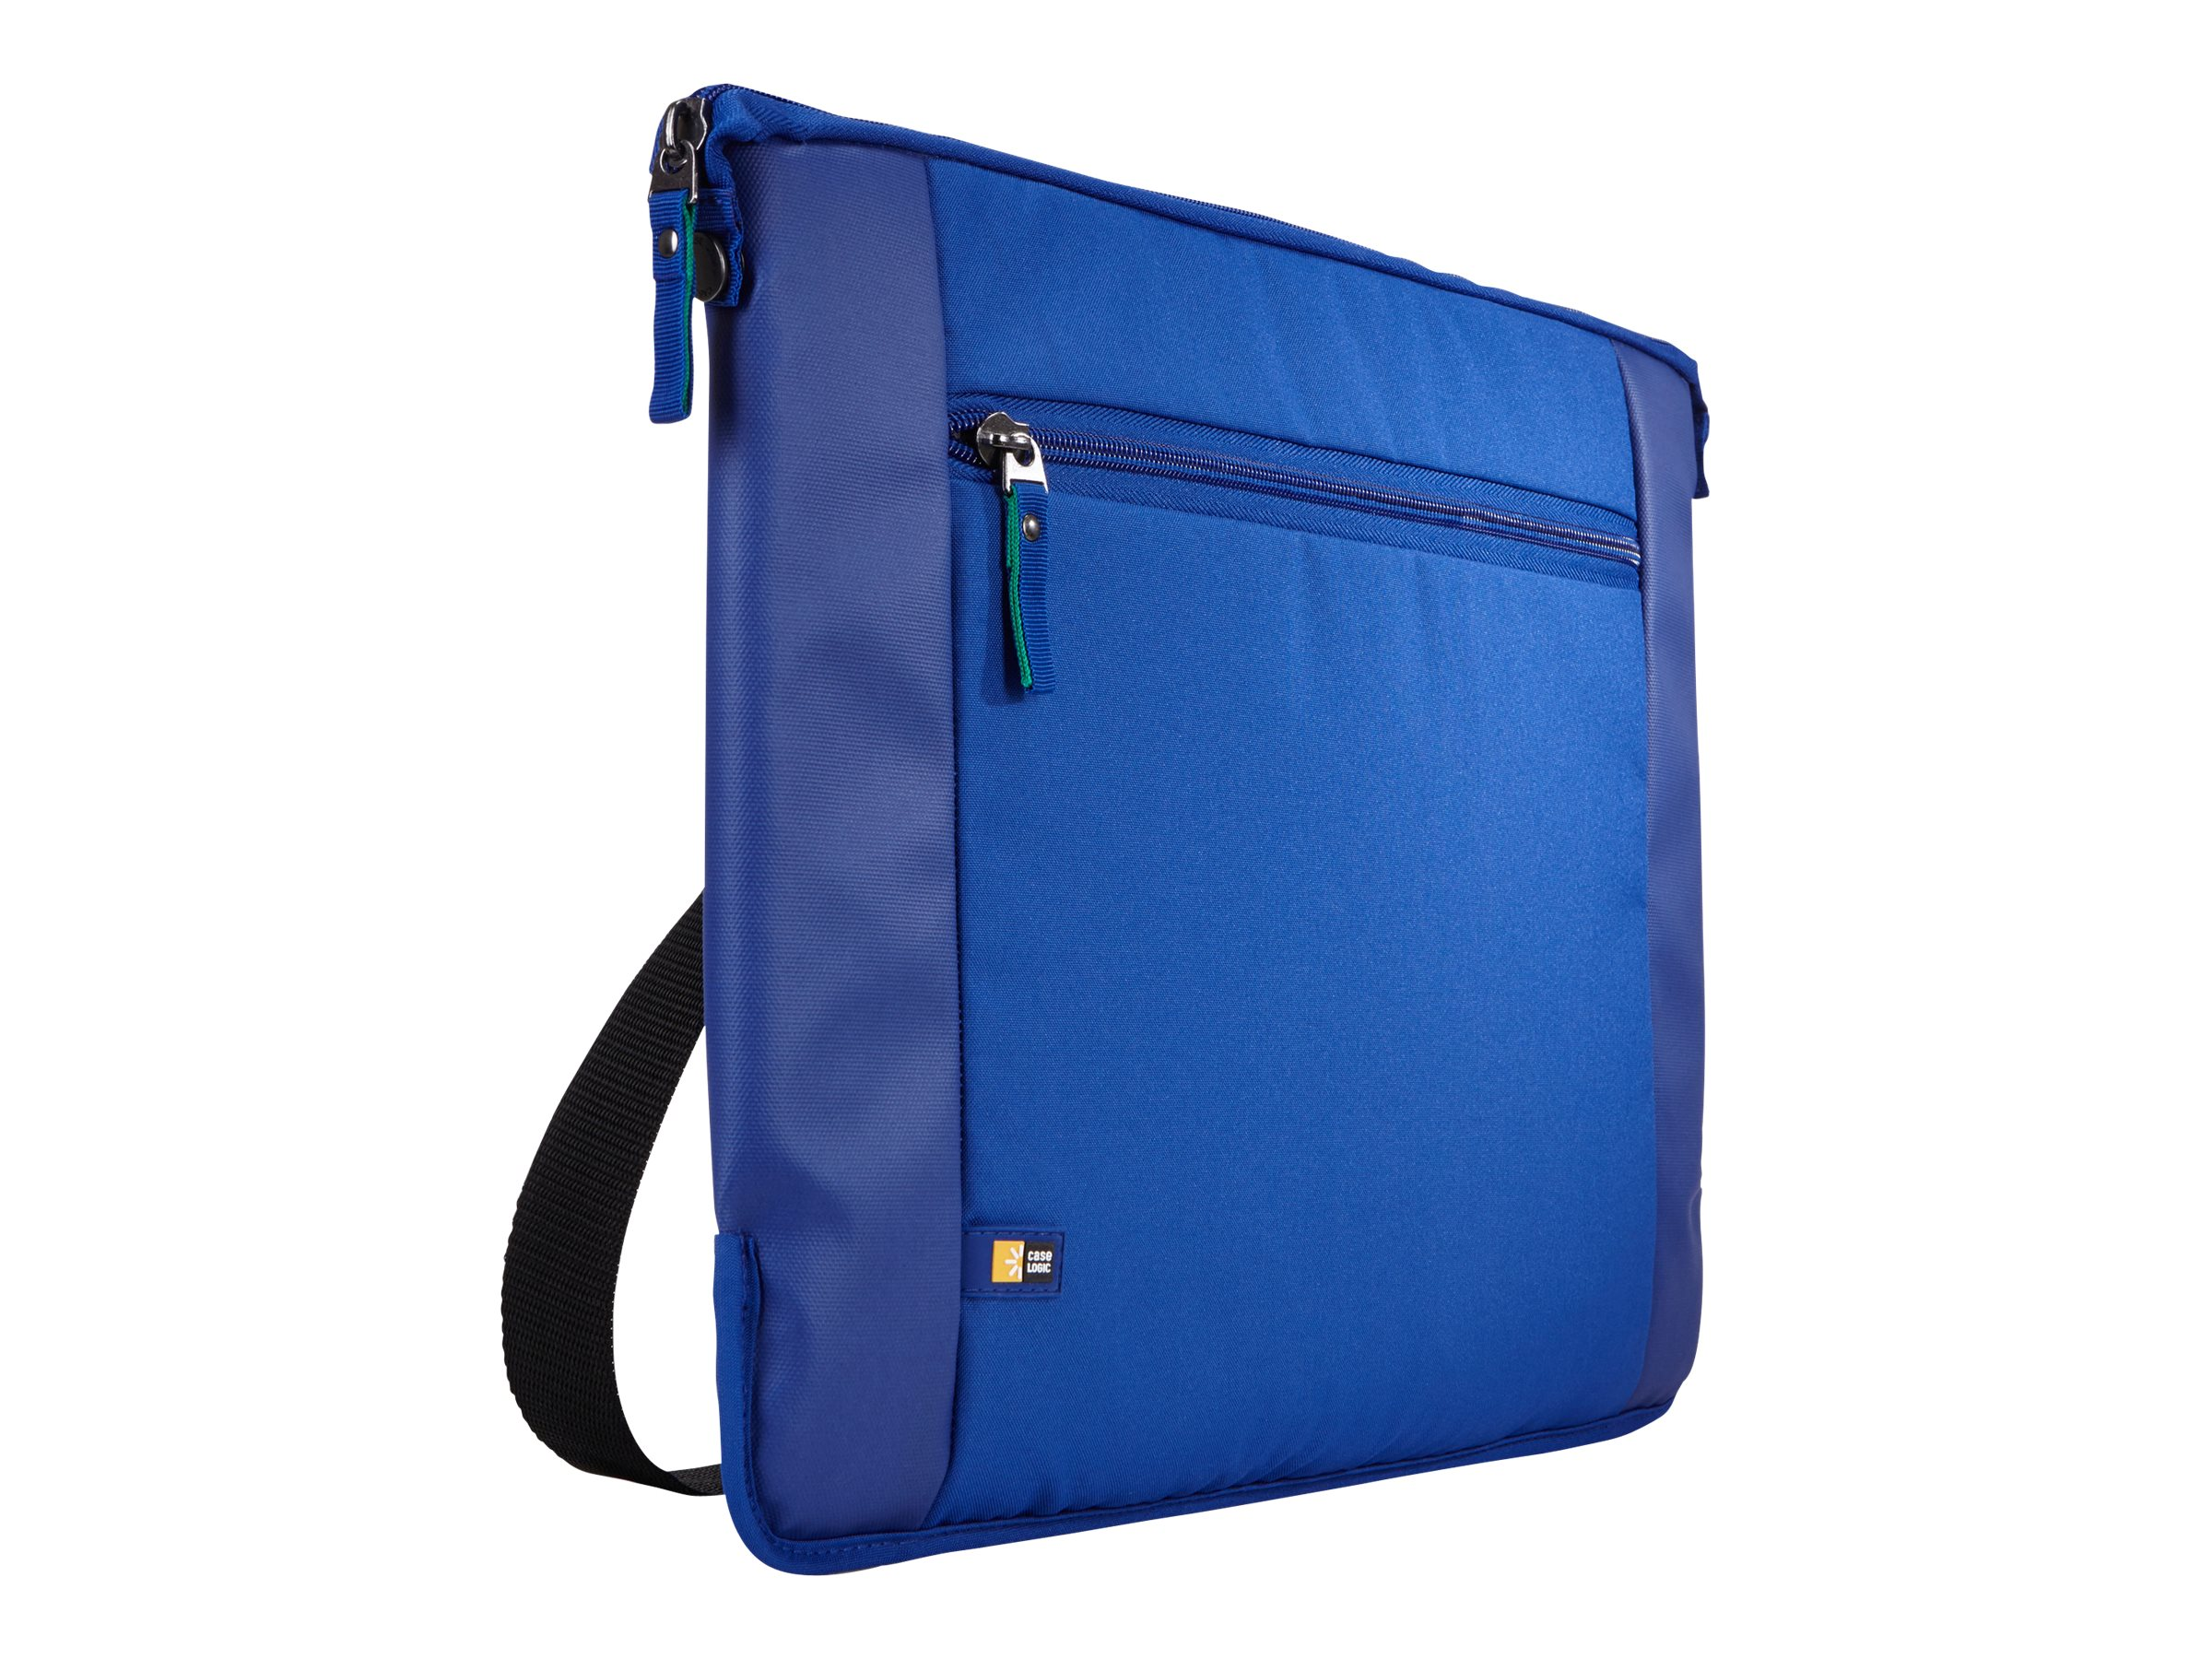 Case Logic Intrata 15.6 Laptop Bag, Ion, INT115ION, 20936068, Carrying Cases - Notebook